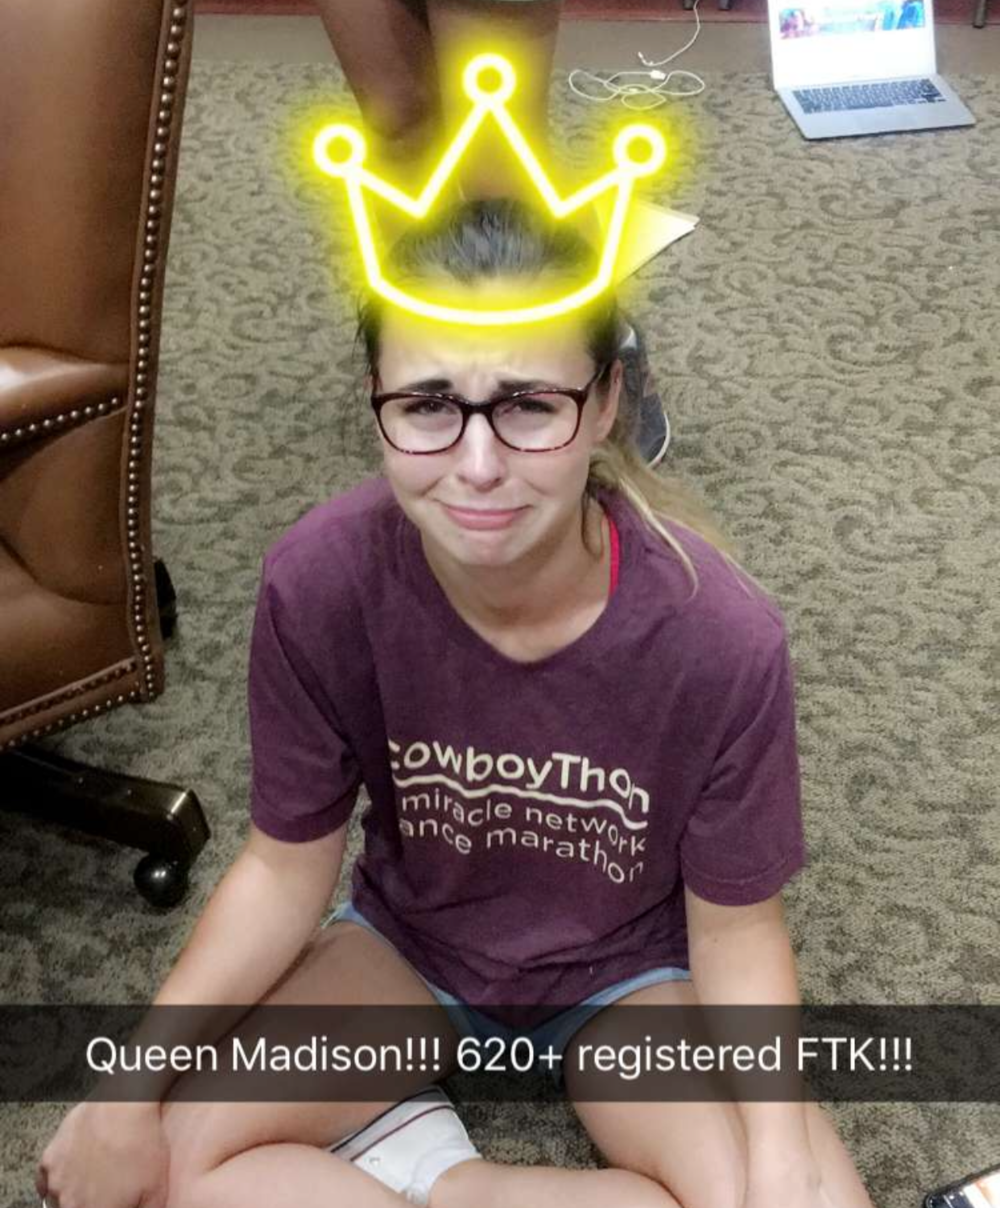 Congratulations to our vice president of membership, Madison, on such a well-planned and well-executed day! We are so proud of you!